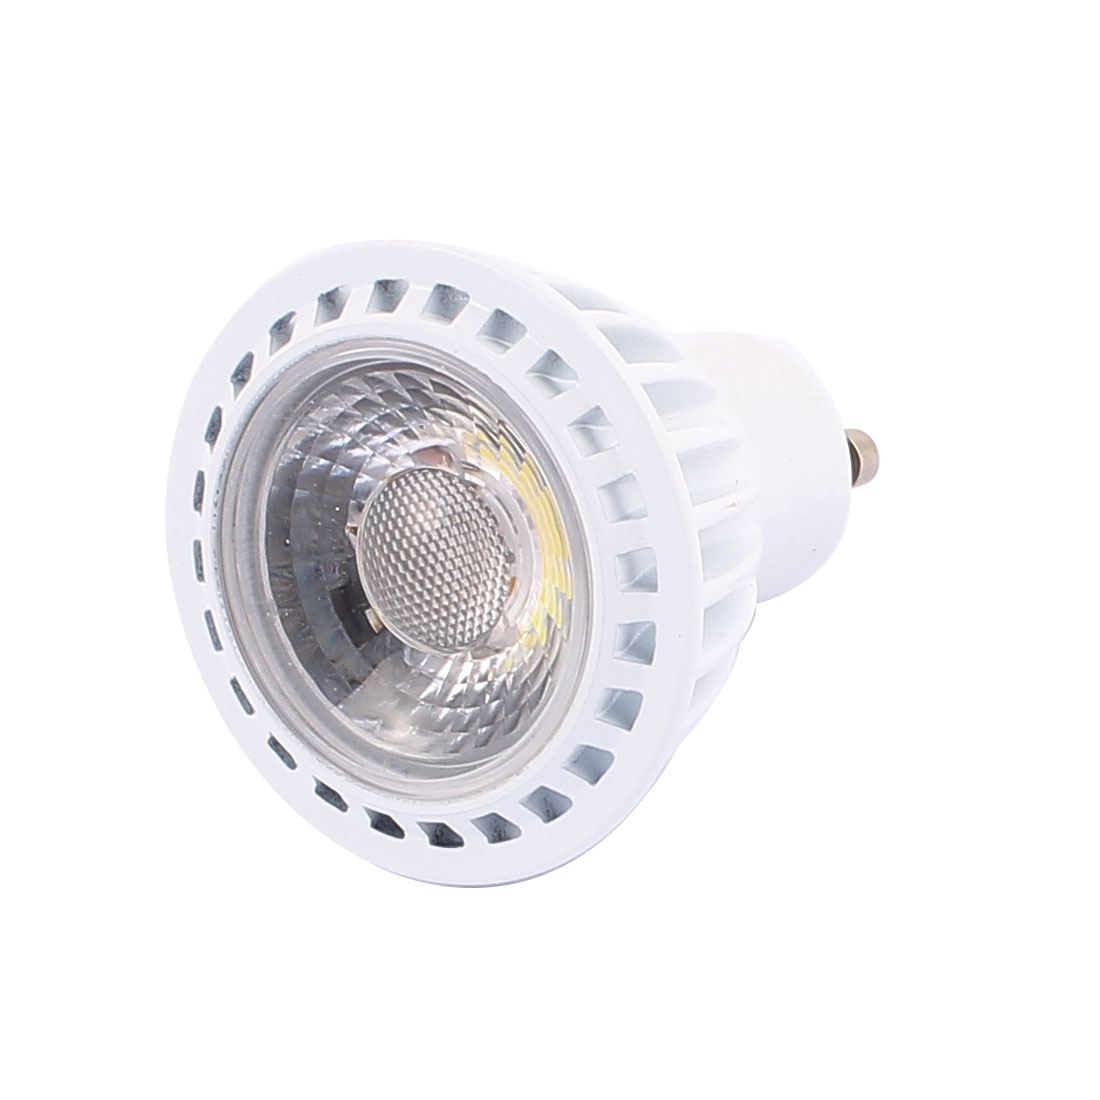 AC85-265V 5W GU10 COB LED Spotlight Lamp Bulb Energy Saving Downlight Pure White